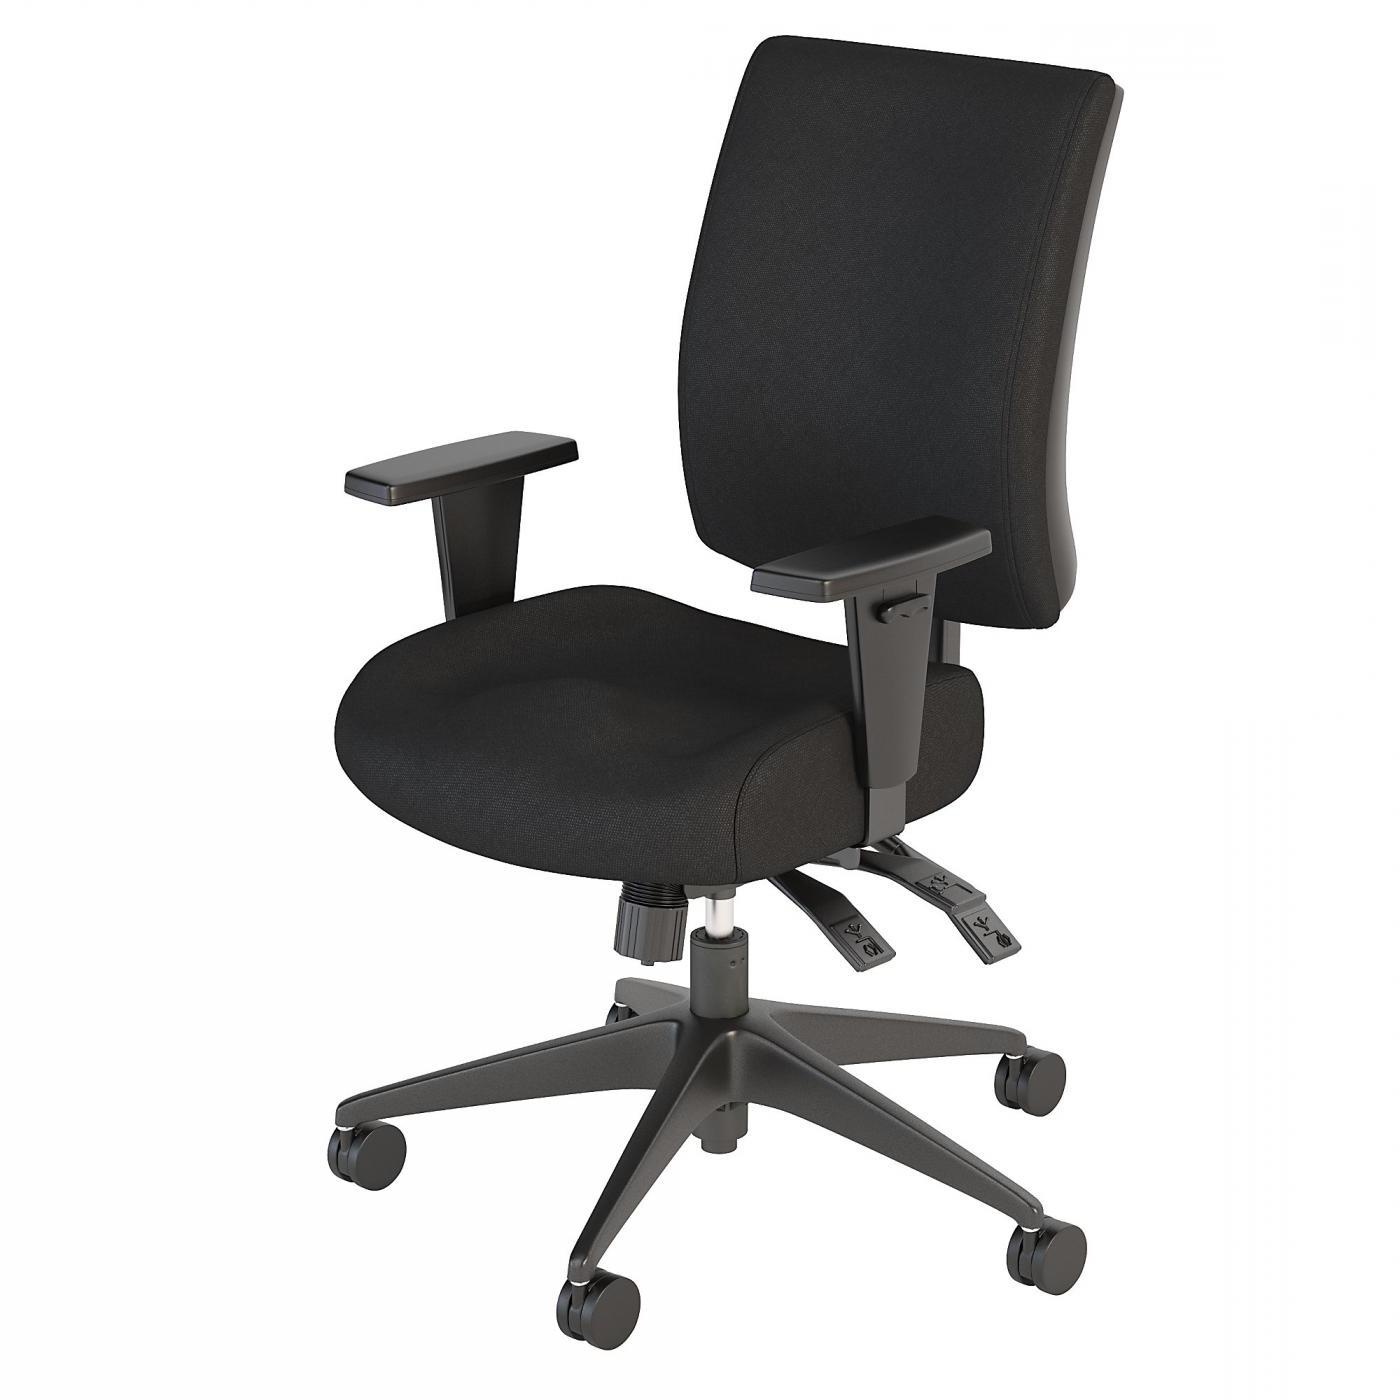 BUSH BUSINESS FURNITURE ACCORD MID BACK DELUXE MULTIFUNCTION OFFICE CHAIR. FREE SHIPPING.